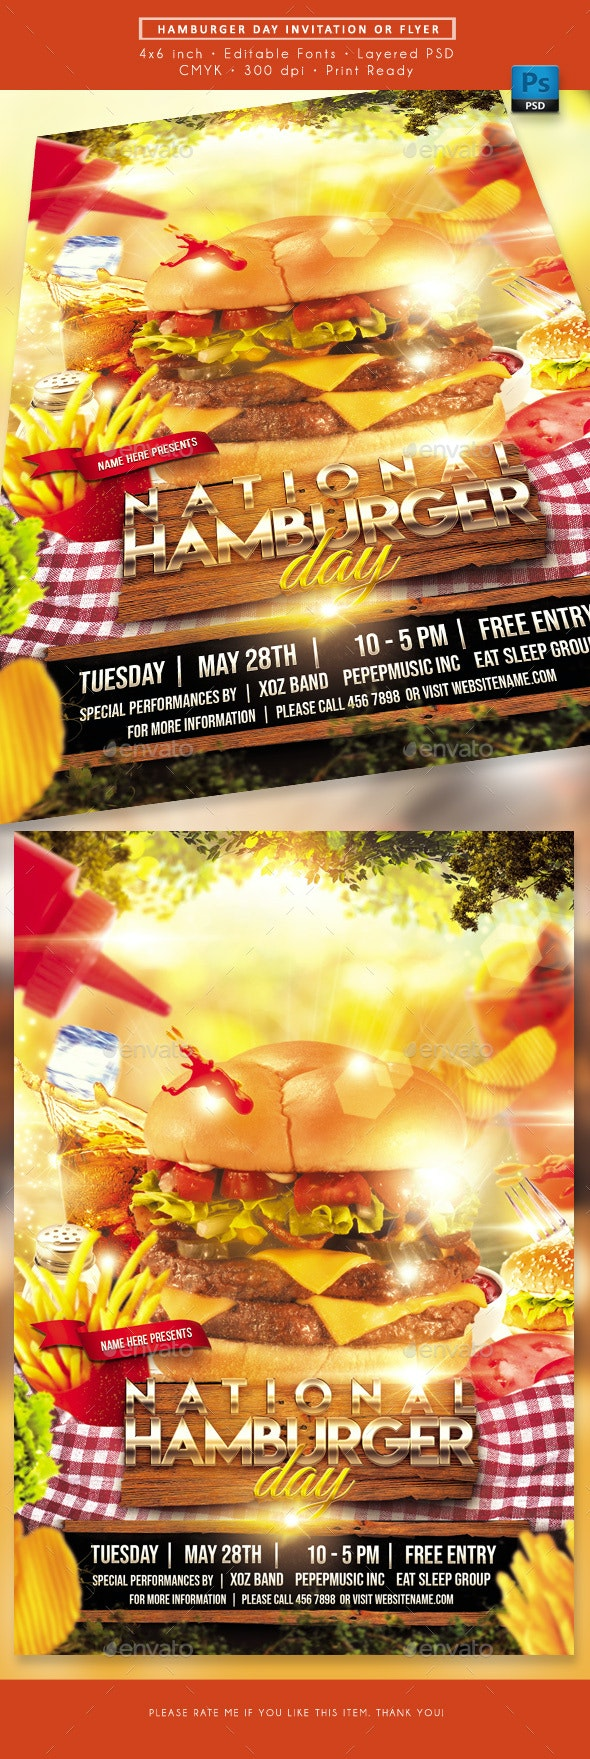 Hamburger Day Fast Food Flyer - Events Flyers